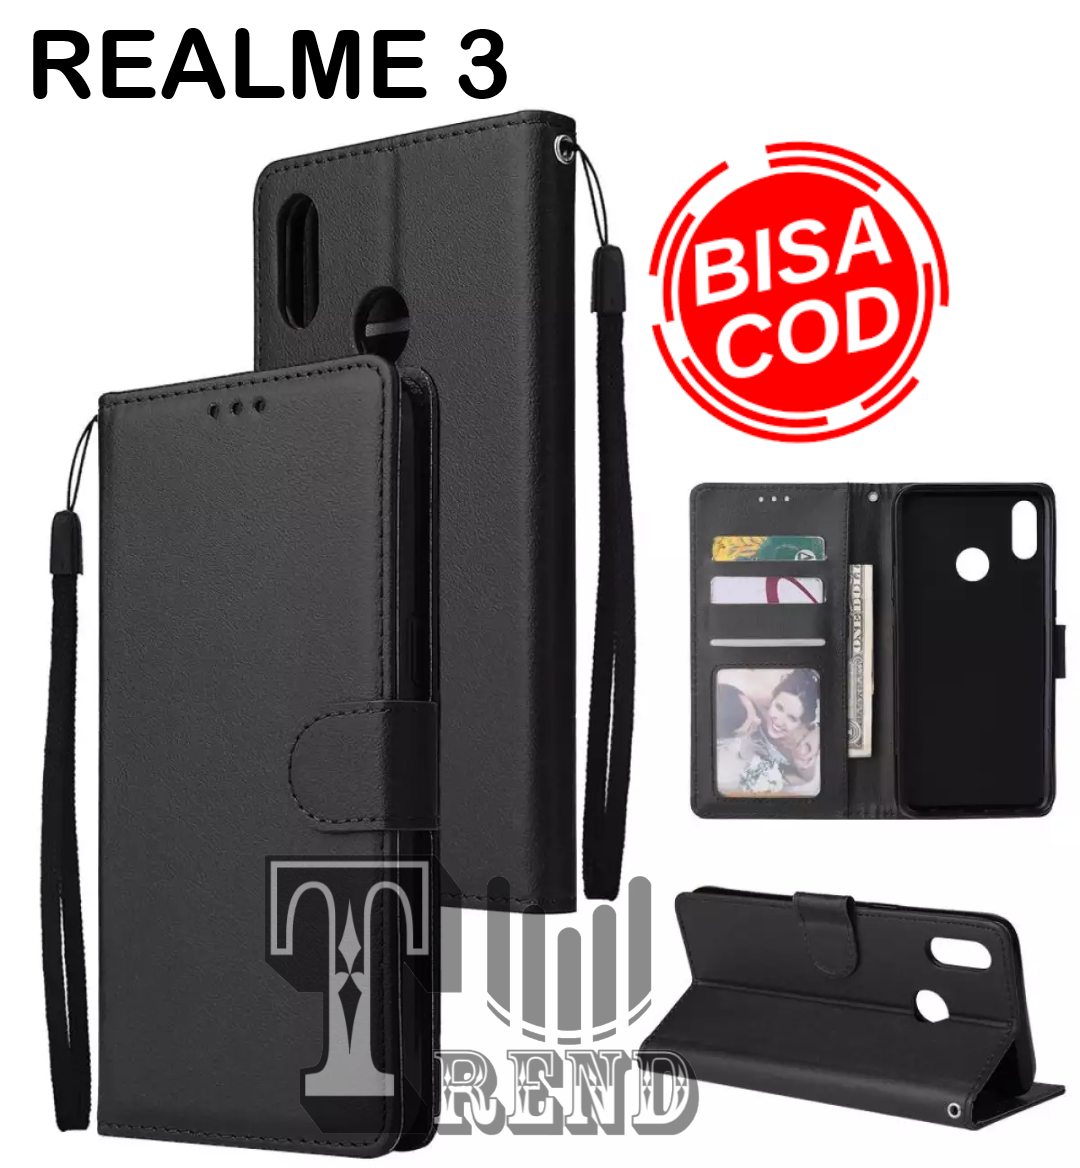 LEATHER CASE FLIP UNTUK REALME 3 -FLIP  WALLET CASE KULIT REALME 3  - CASING DOMPET-FLIP COVER LEATHER-SARUNG BUKU HP